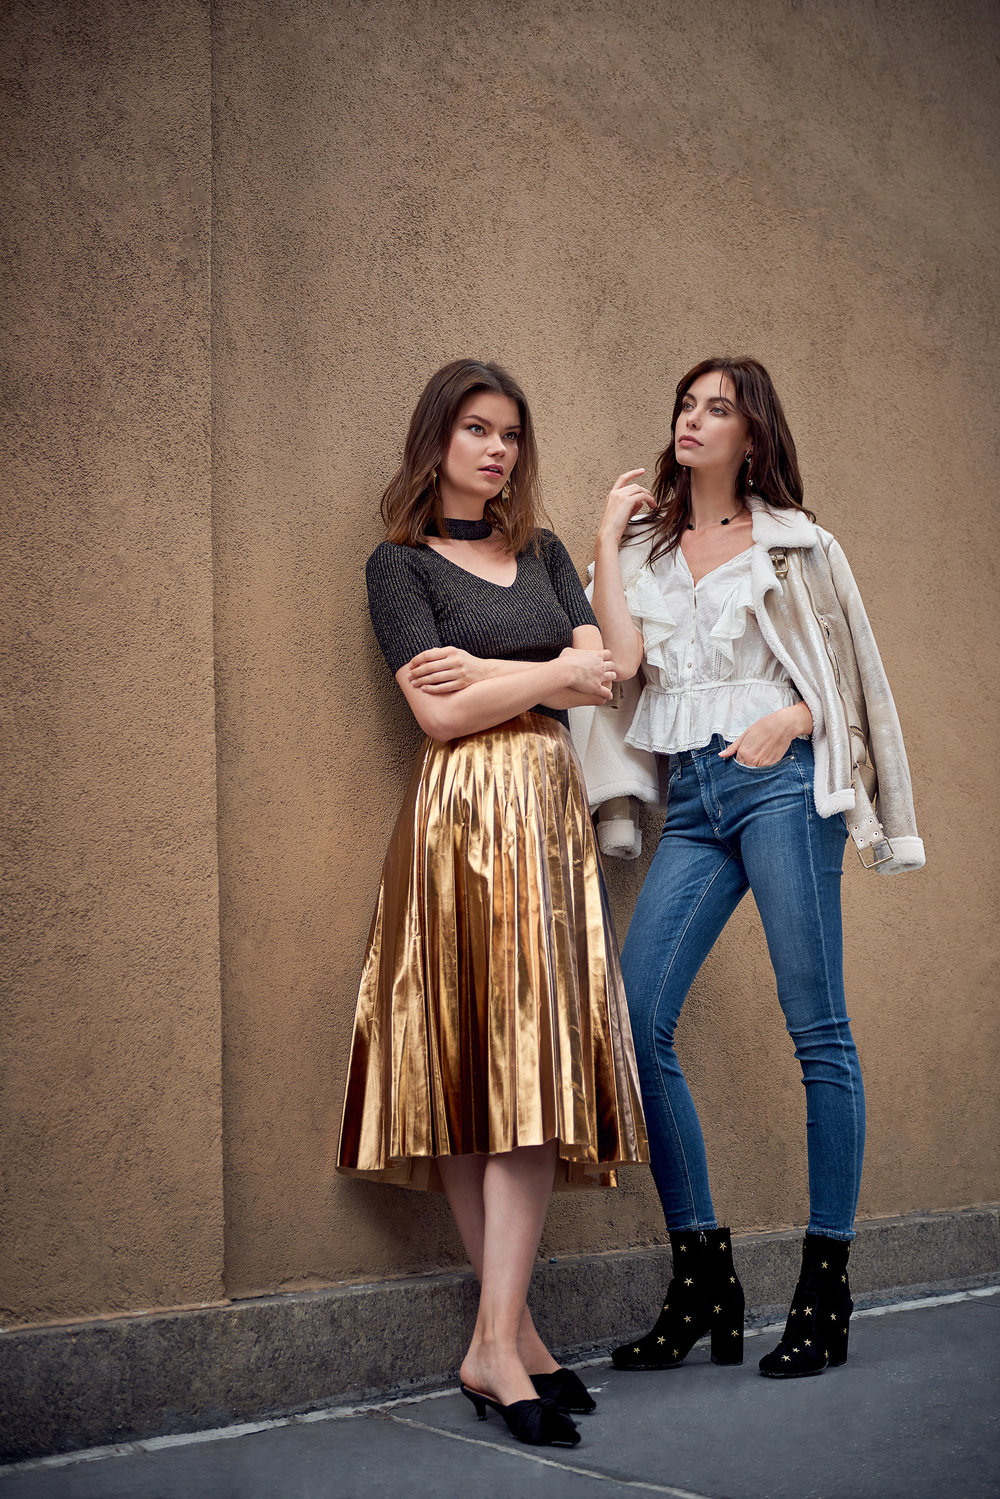 Left: Idrissa Metallic Knit Choker Top & Katya Metallic Gold Pleated Midi Skirt  Right: Georgia Metallic Gold Shearling Biker Jacket & They Call Her ONYX Necklace & Livie Top - Ivory & Newton Skinny Jeans With Rose Embroidery & Subra Embroidered Stars Ankle Boots - Black